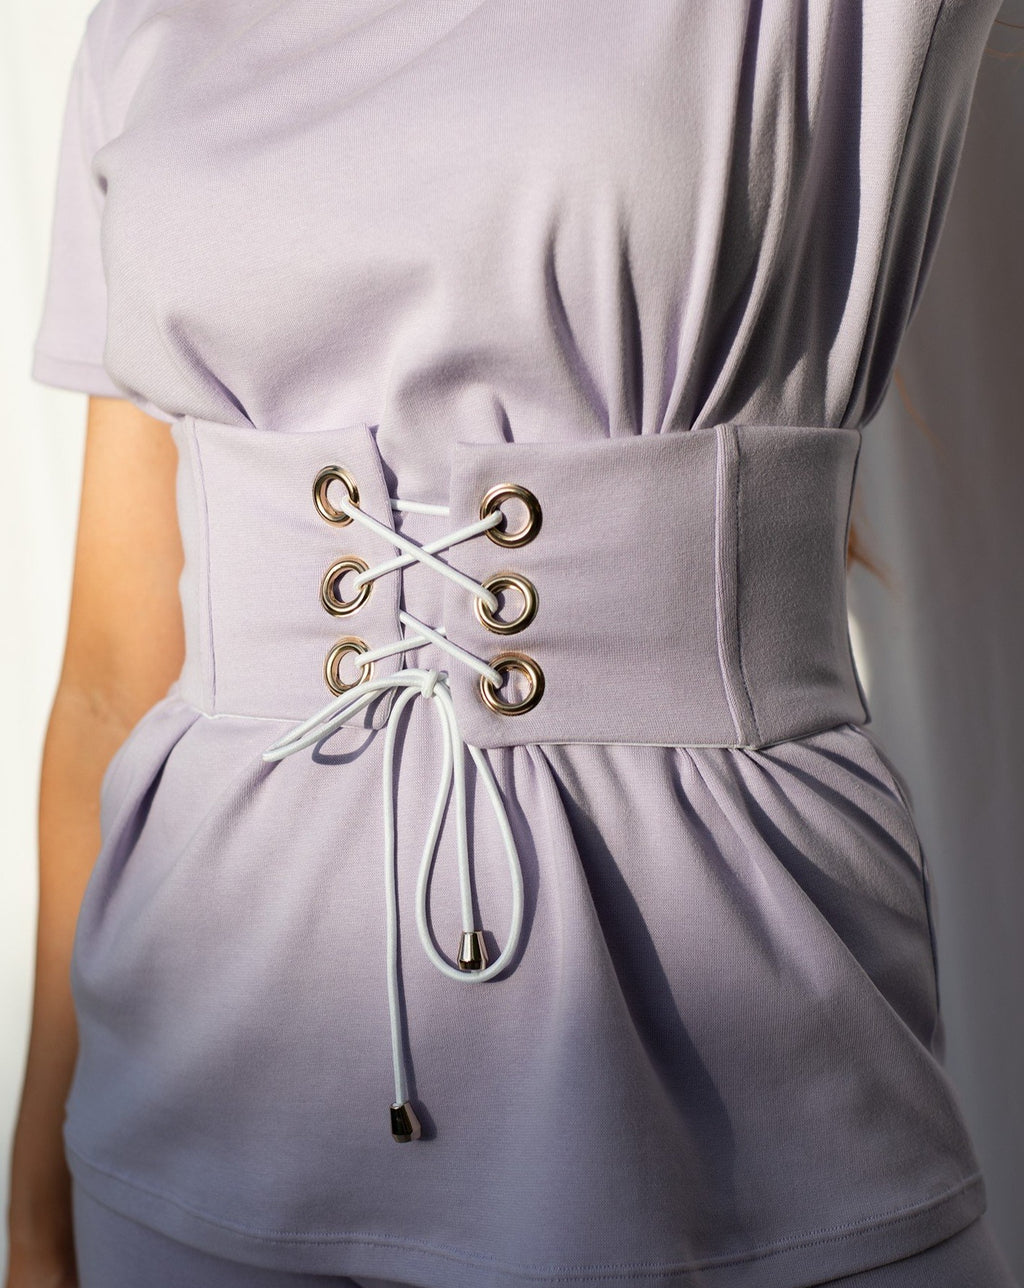 Sophie Corset Belt in Pastel Lilac MADE IN AUSTRALIA